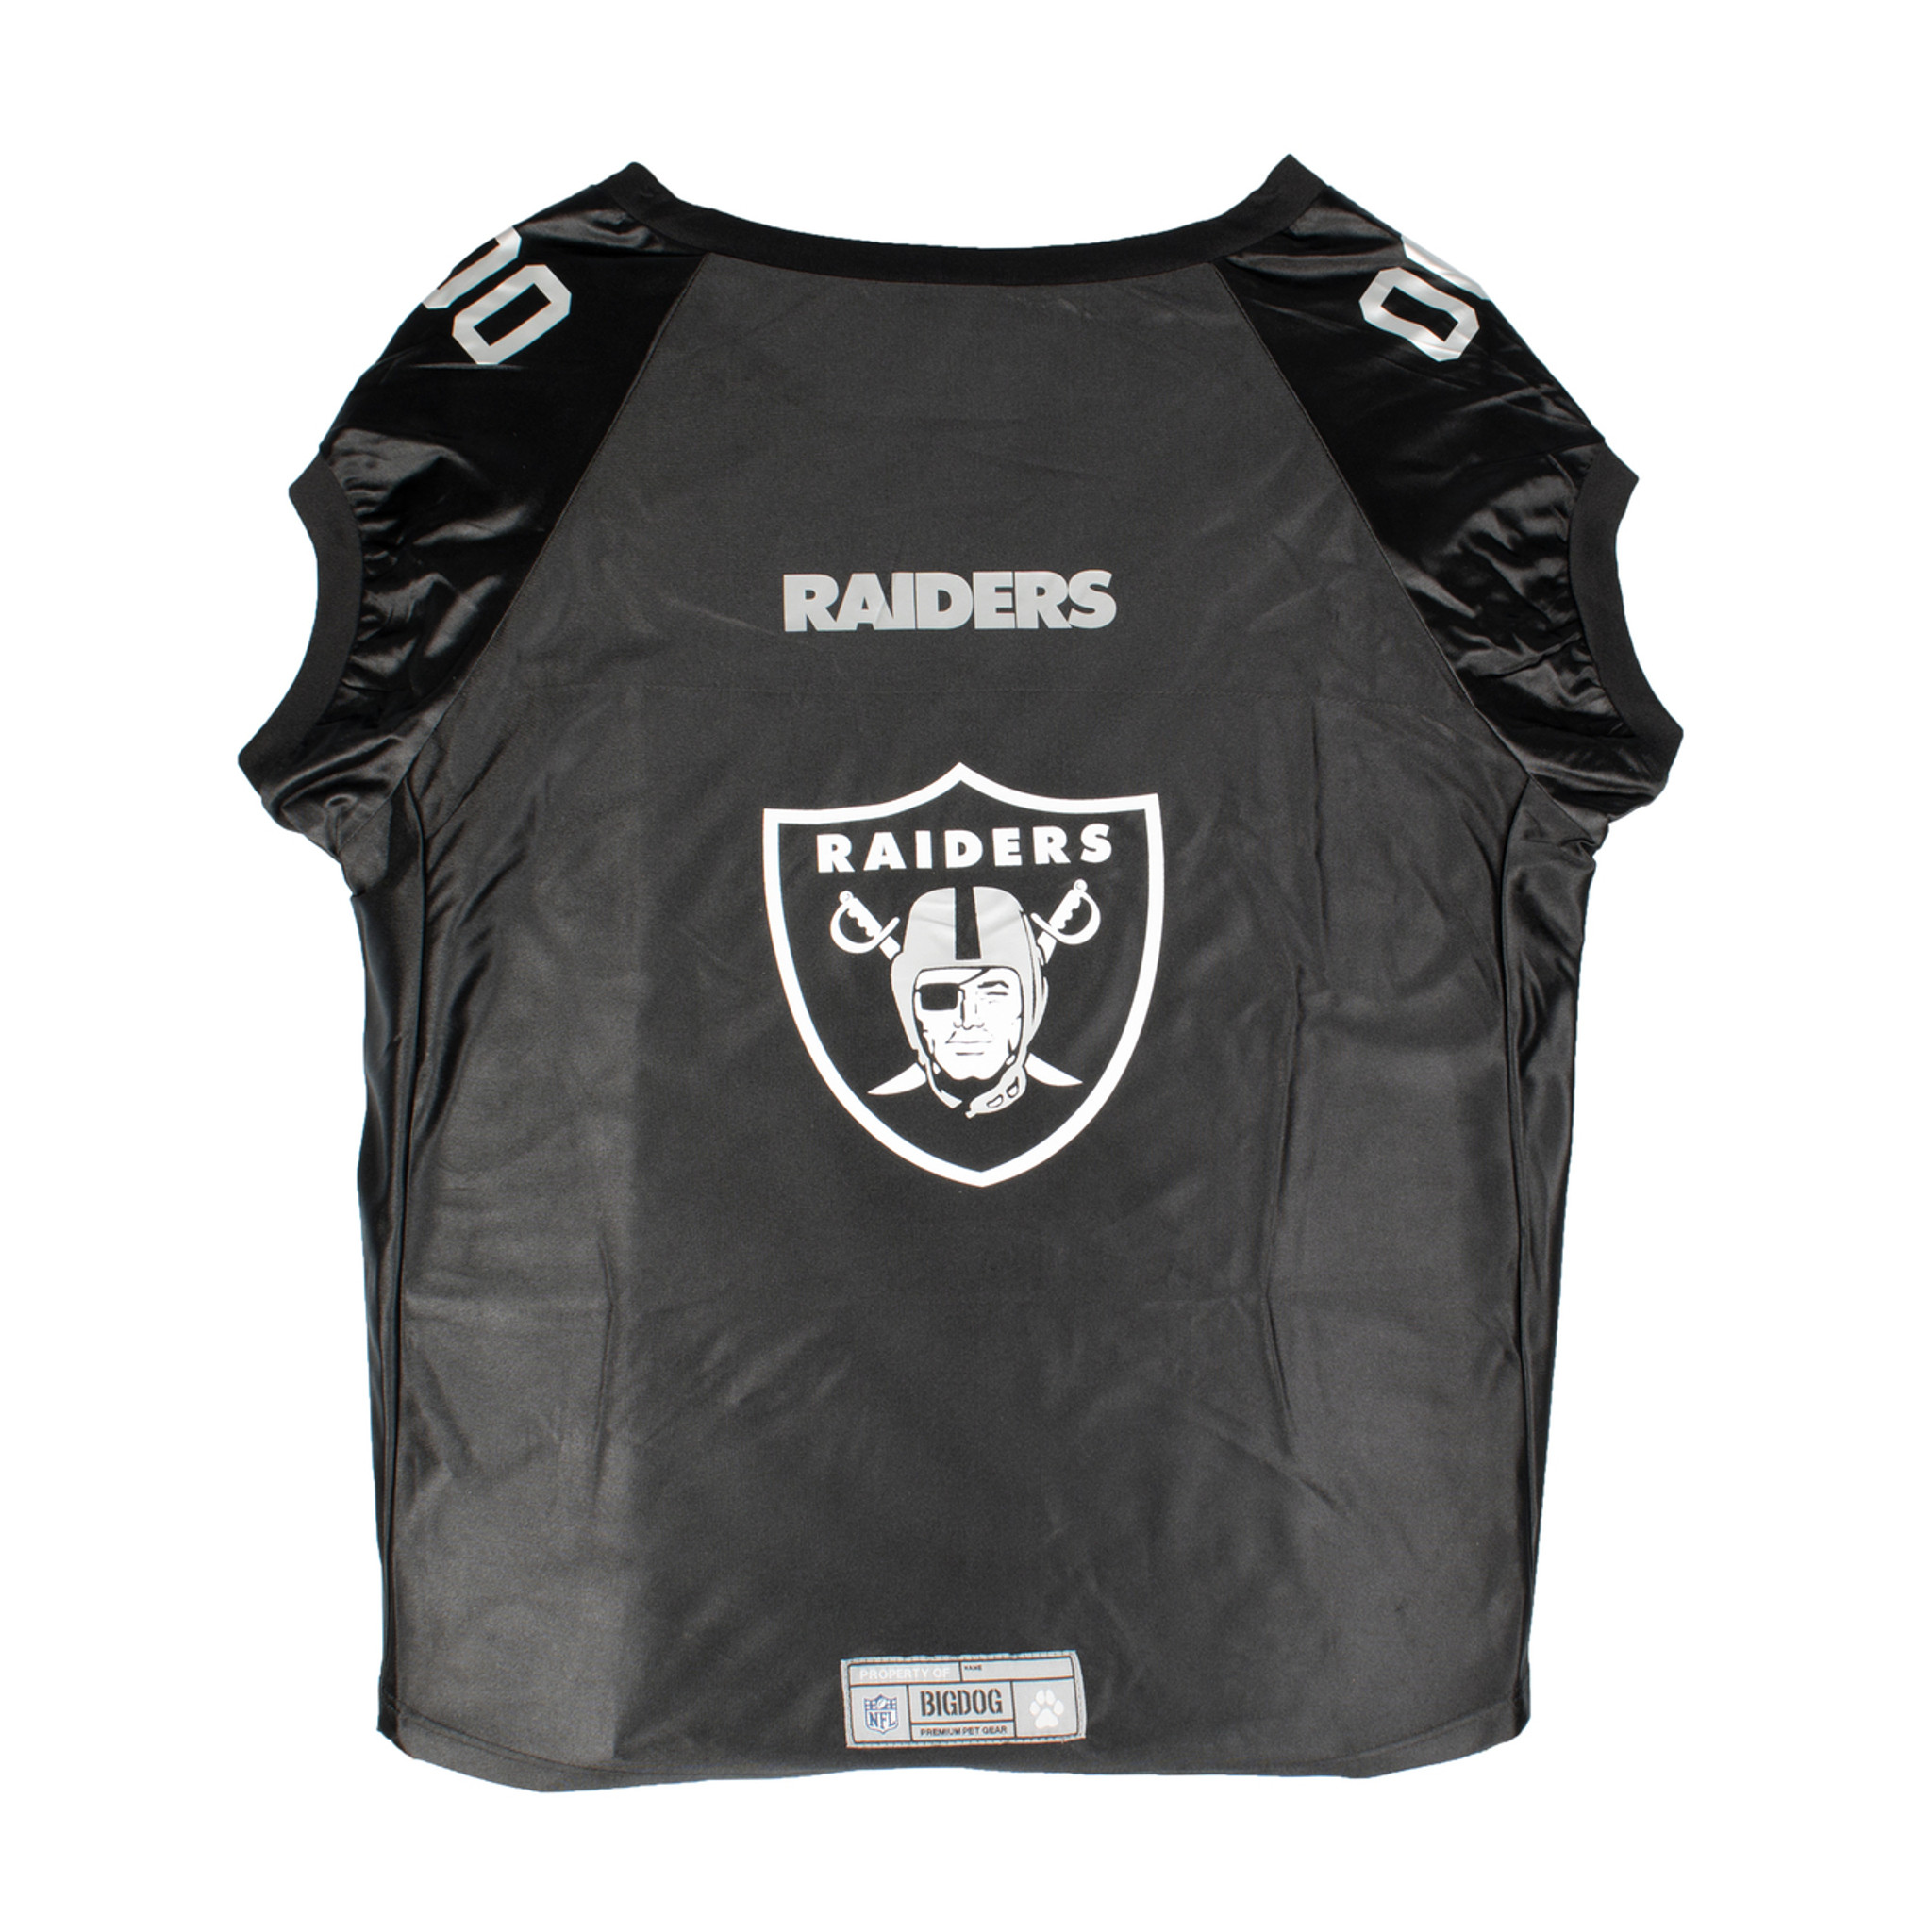 6f65f6722 Oakland Raiders Dog Premium Football Jersey BIG DOGS! - Spawty